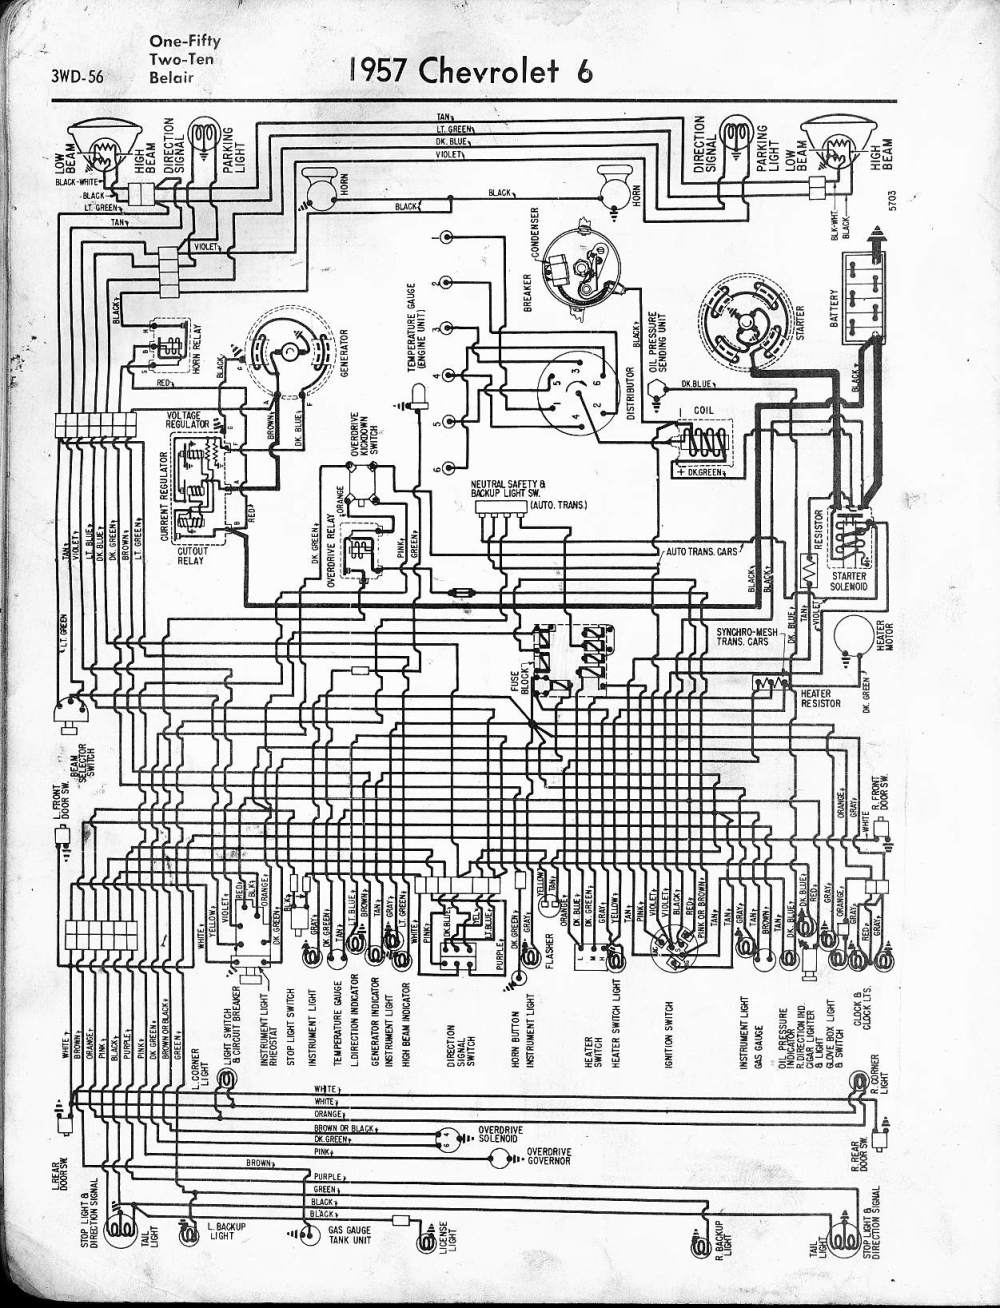 medium resolution of 1962 chevy pickup wiring diagram wiring diagram centre 1957 chevy pickup wiring harness 1962 chevy 2